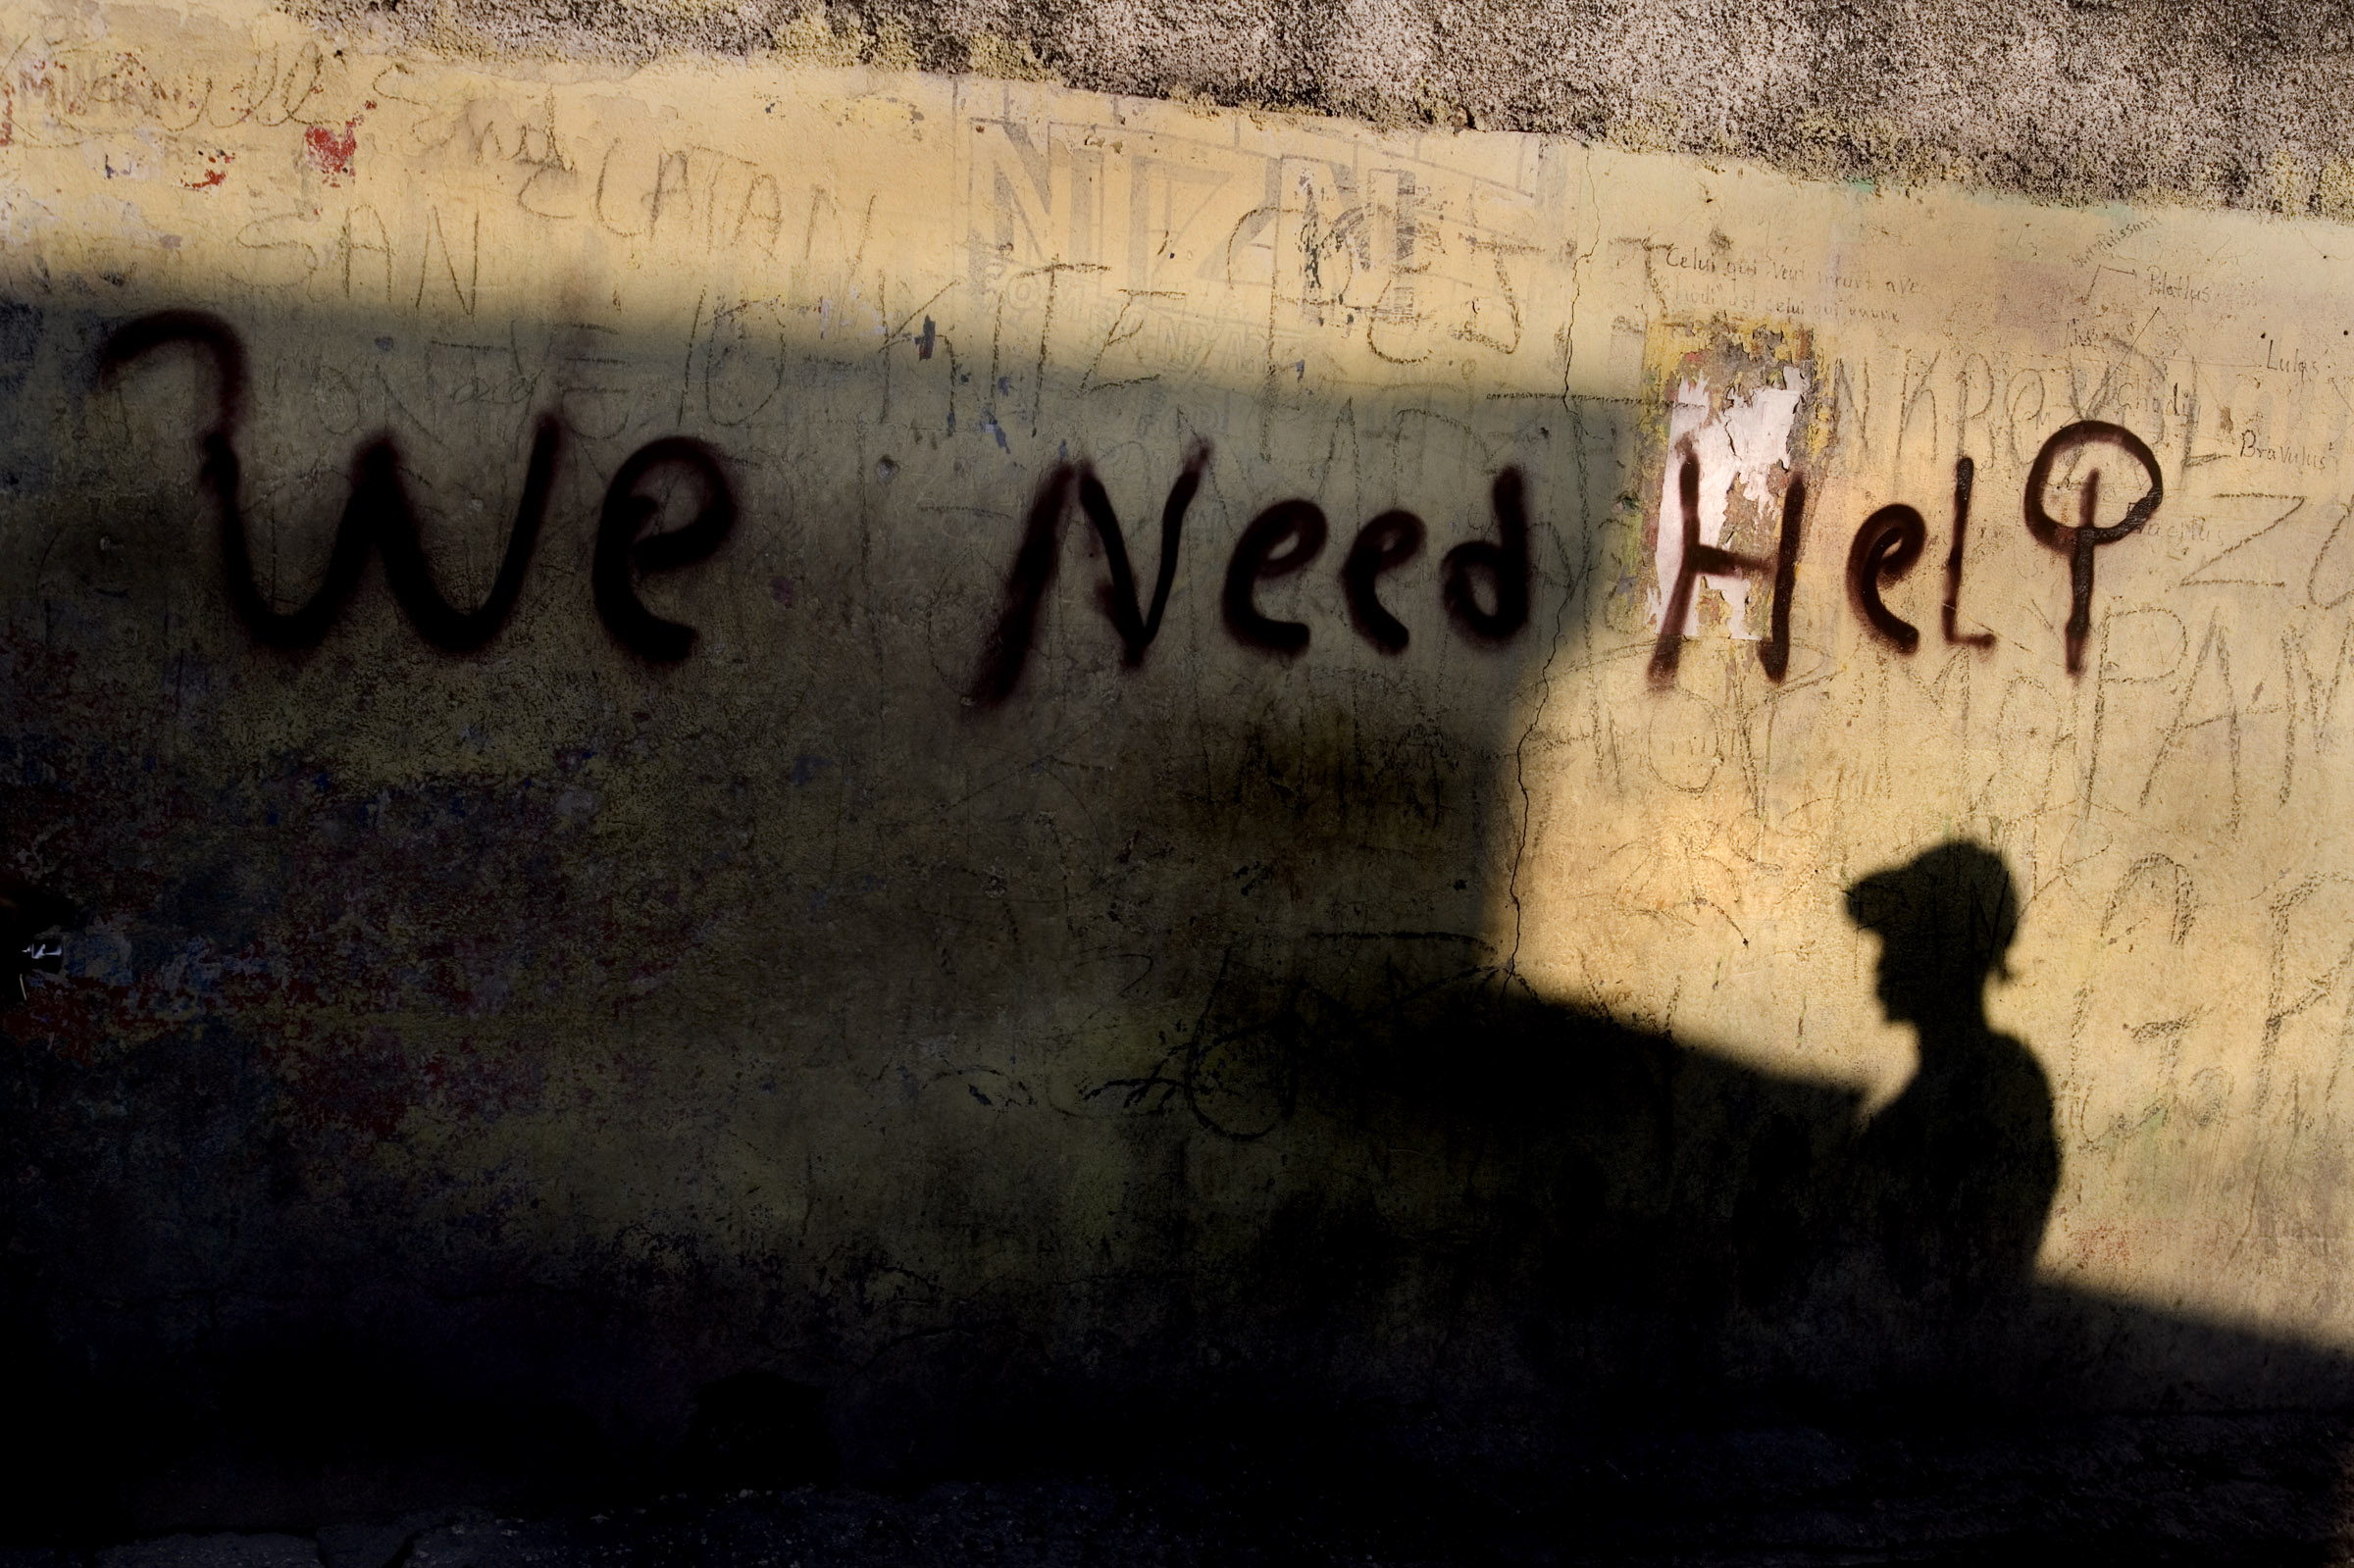 Messages pleading for help line the streets of Port-au-Prince following Haiti's devastating earthquake.